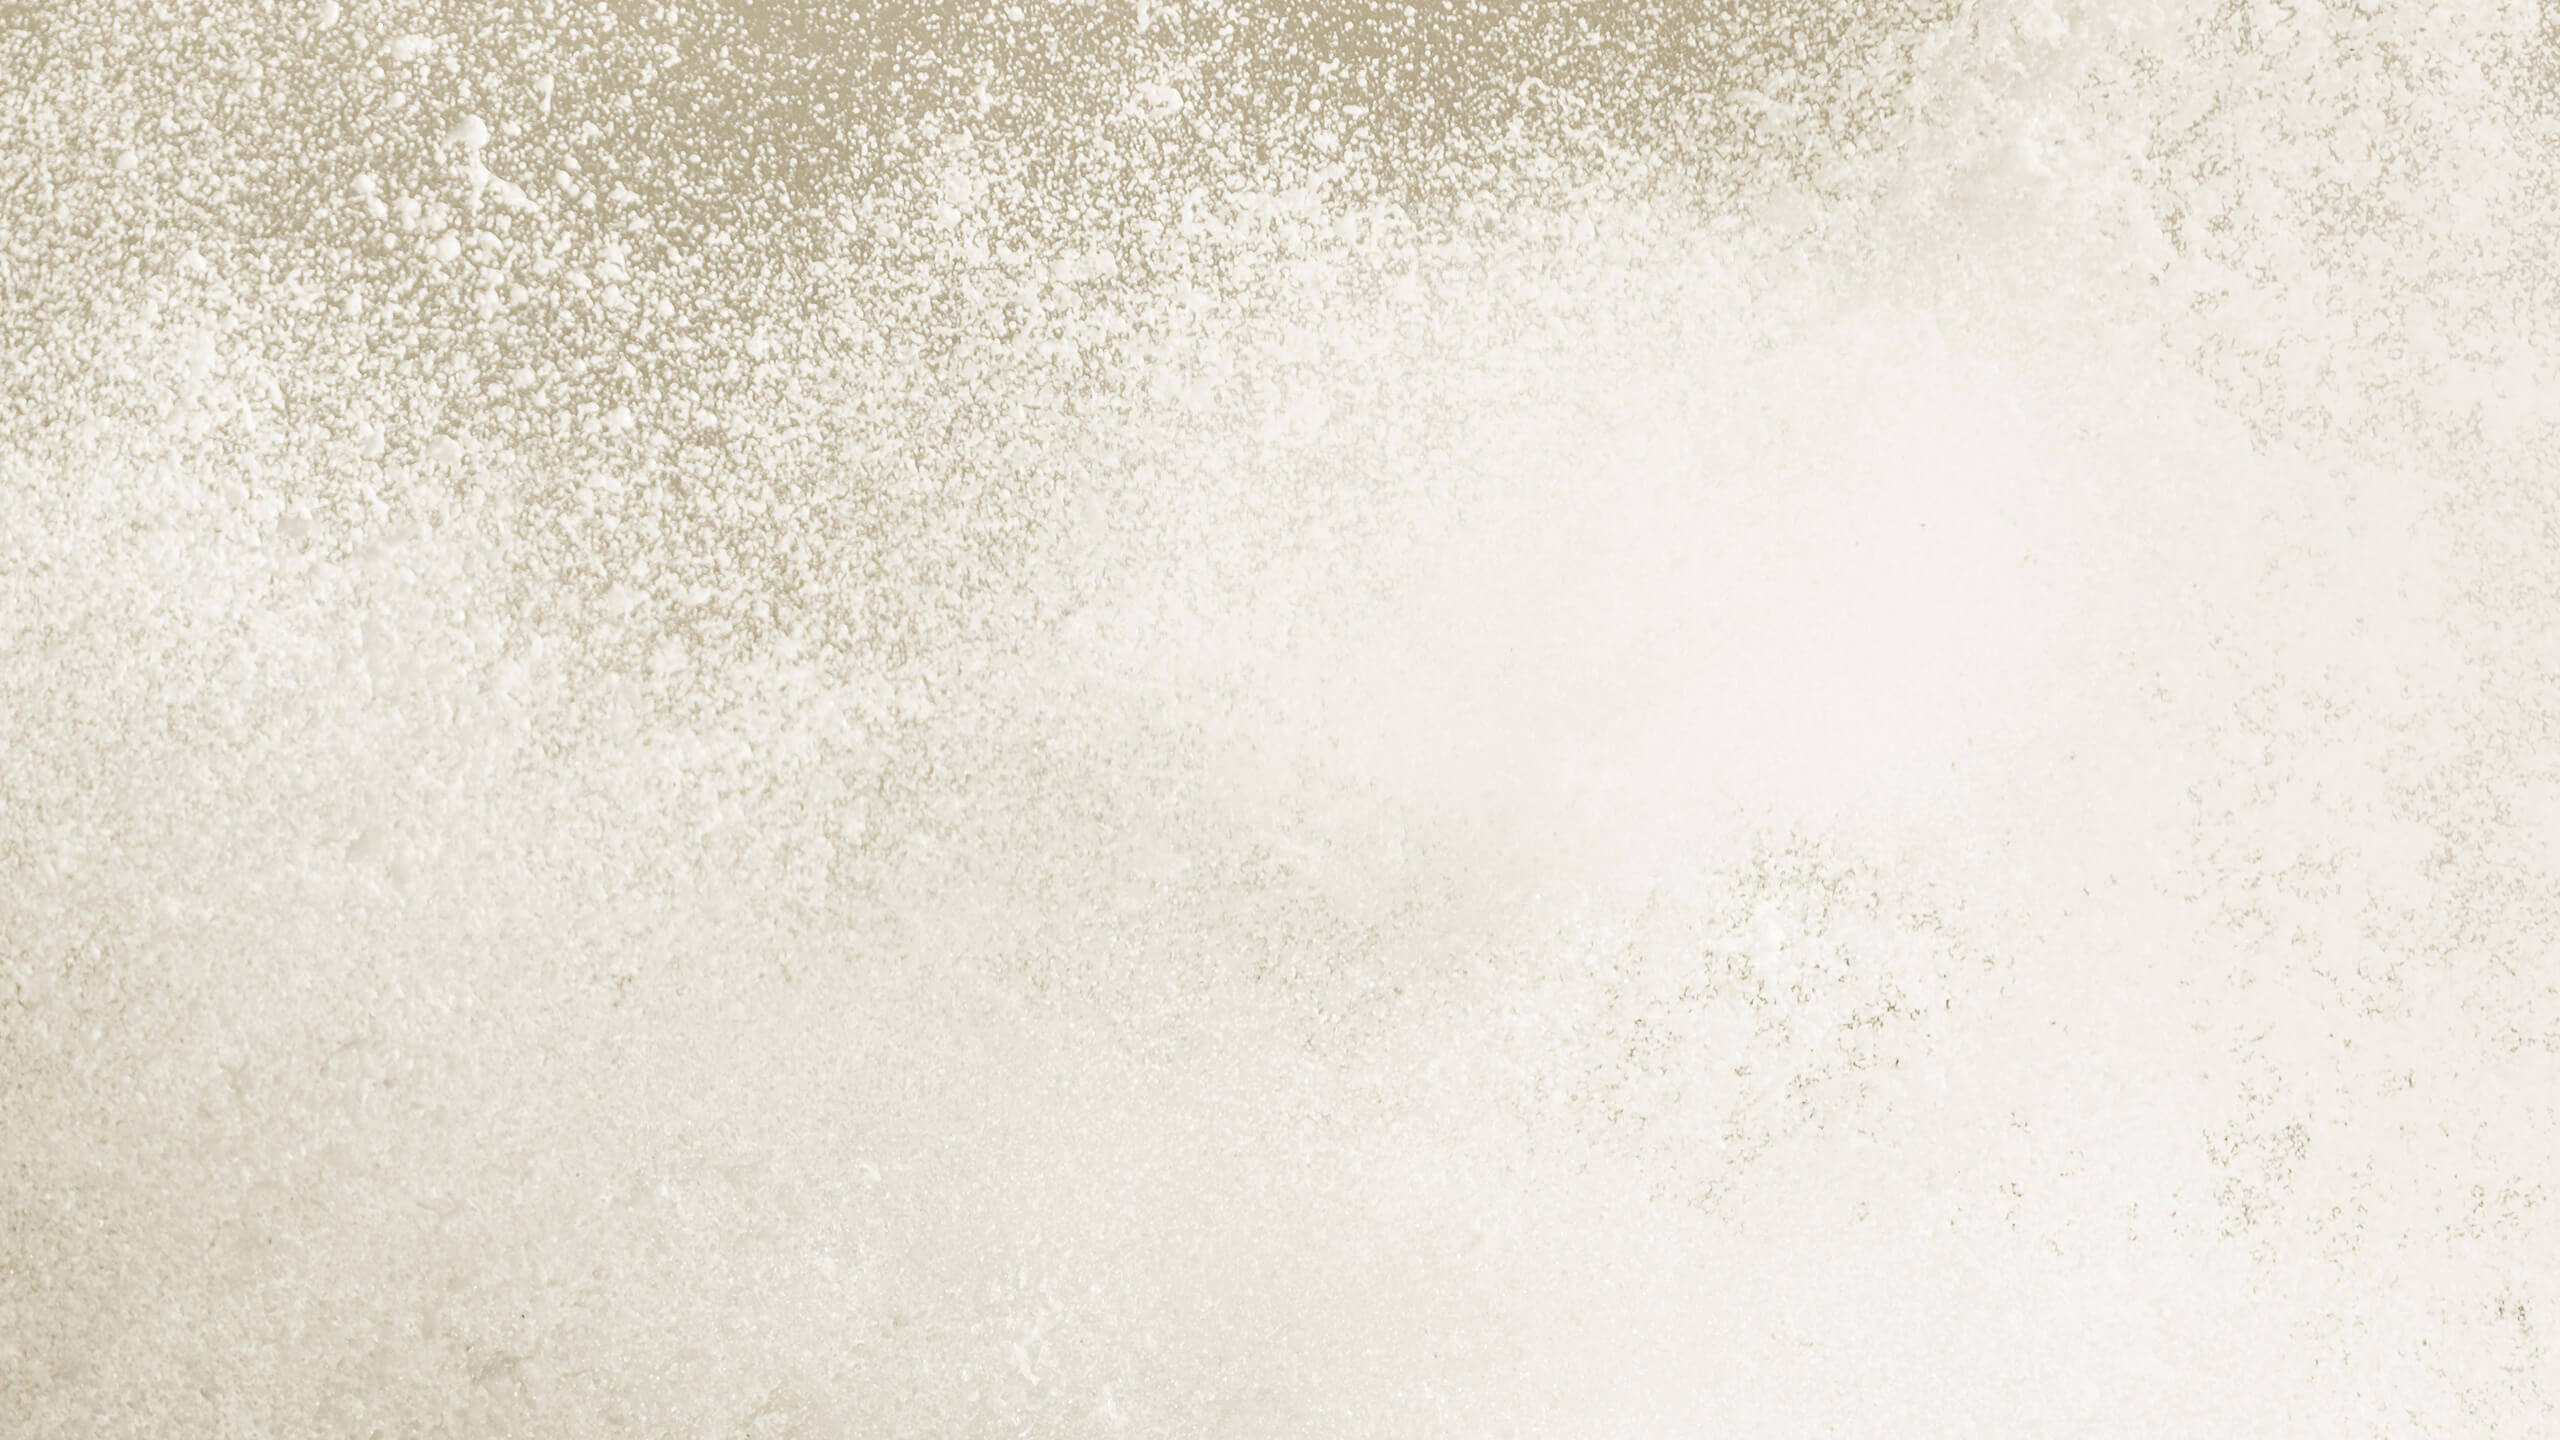 Behind Vanilla Bean flavor powder, a flurry of bright white snow is pictured.